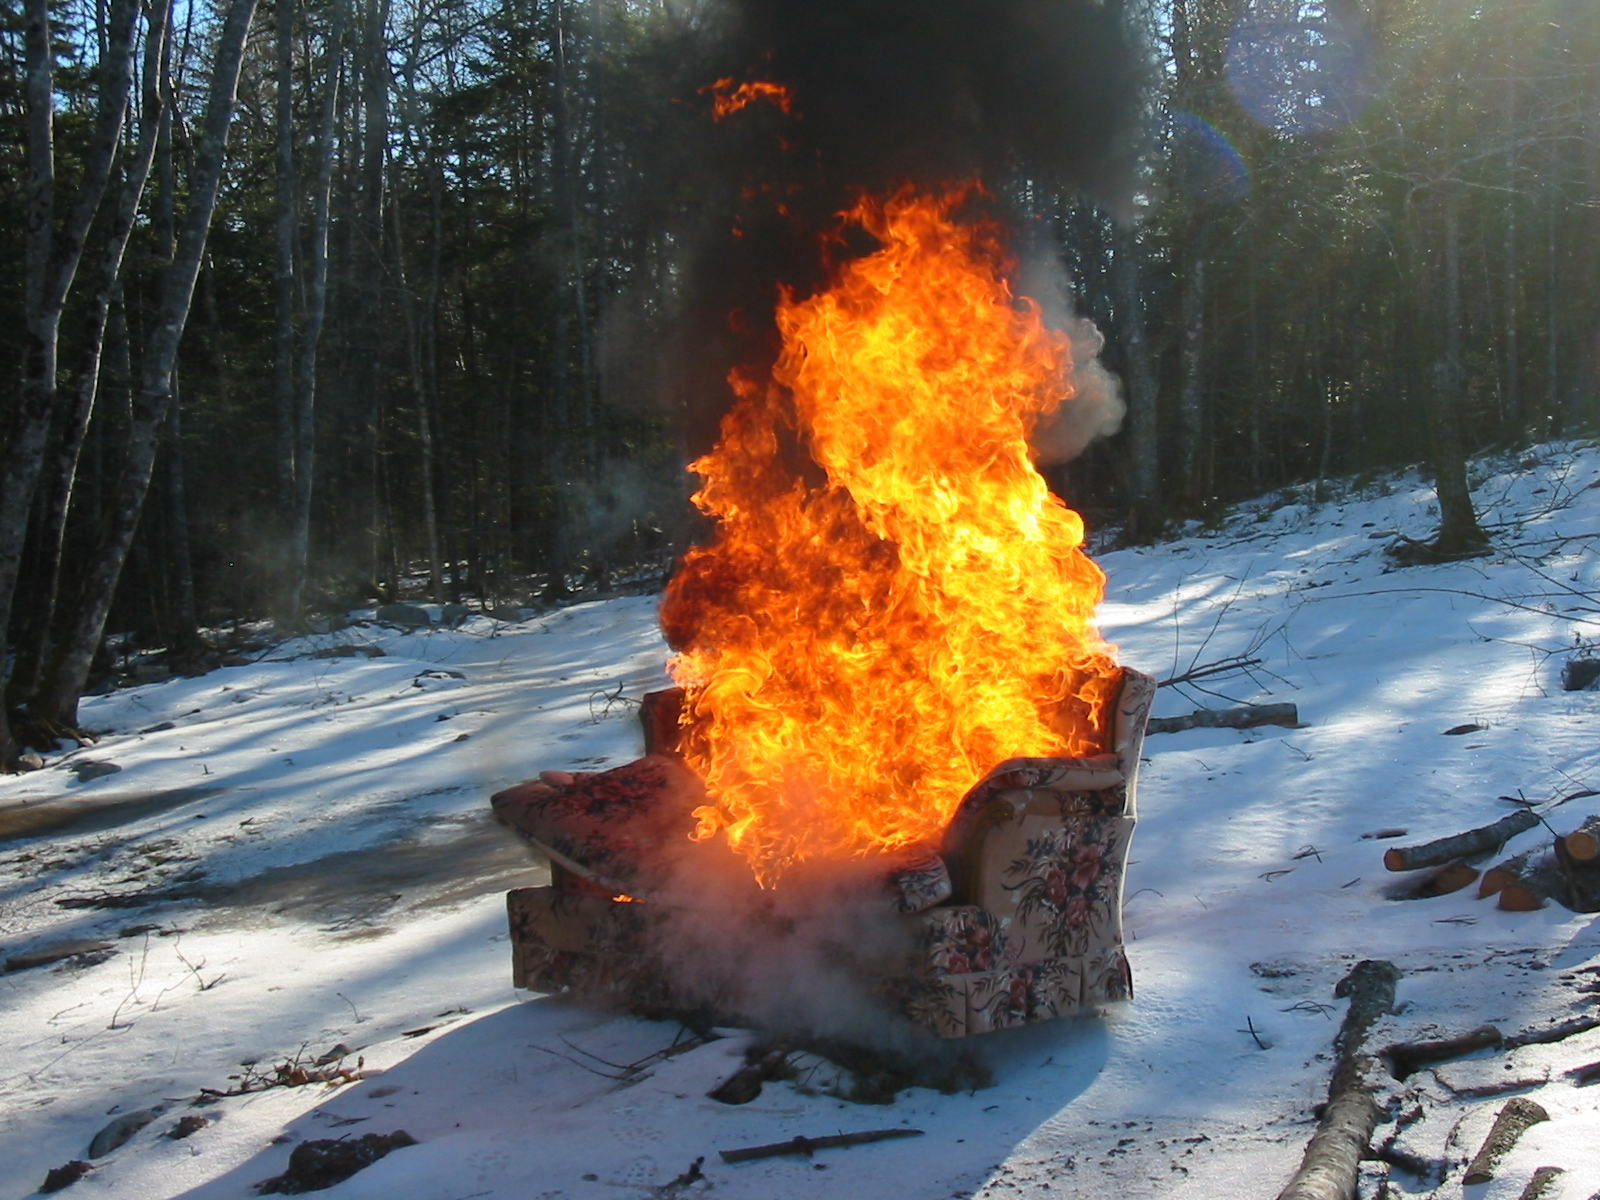 Burning_Couch.jpg